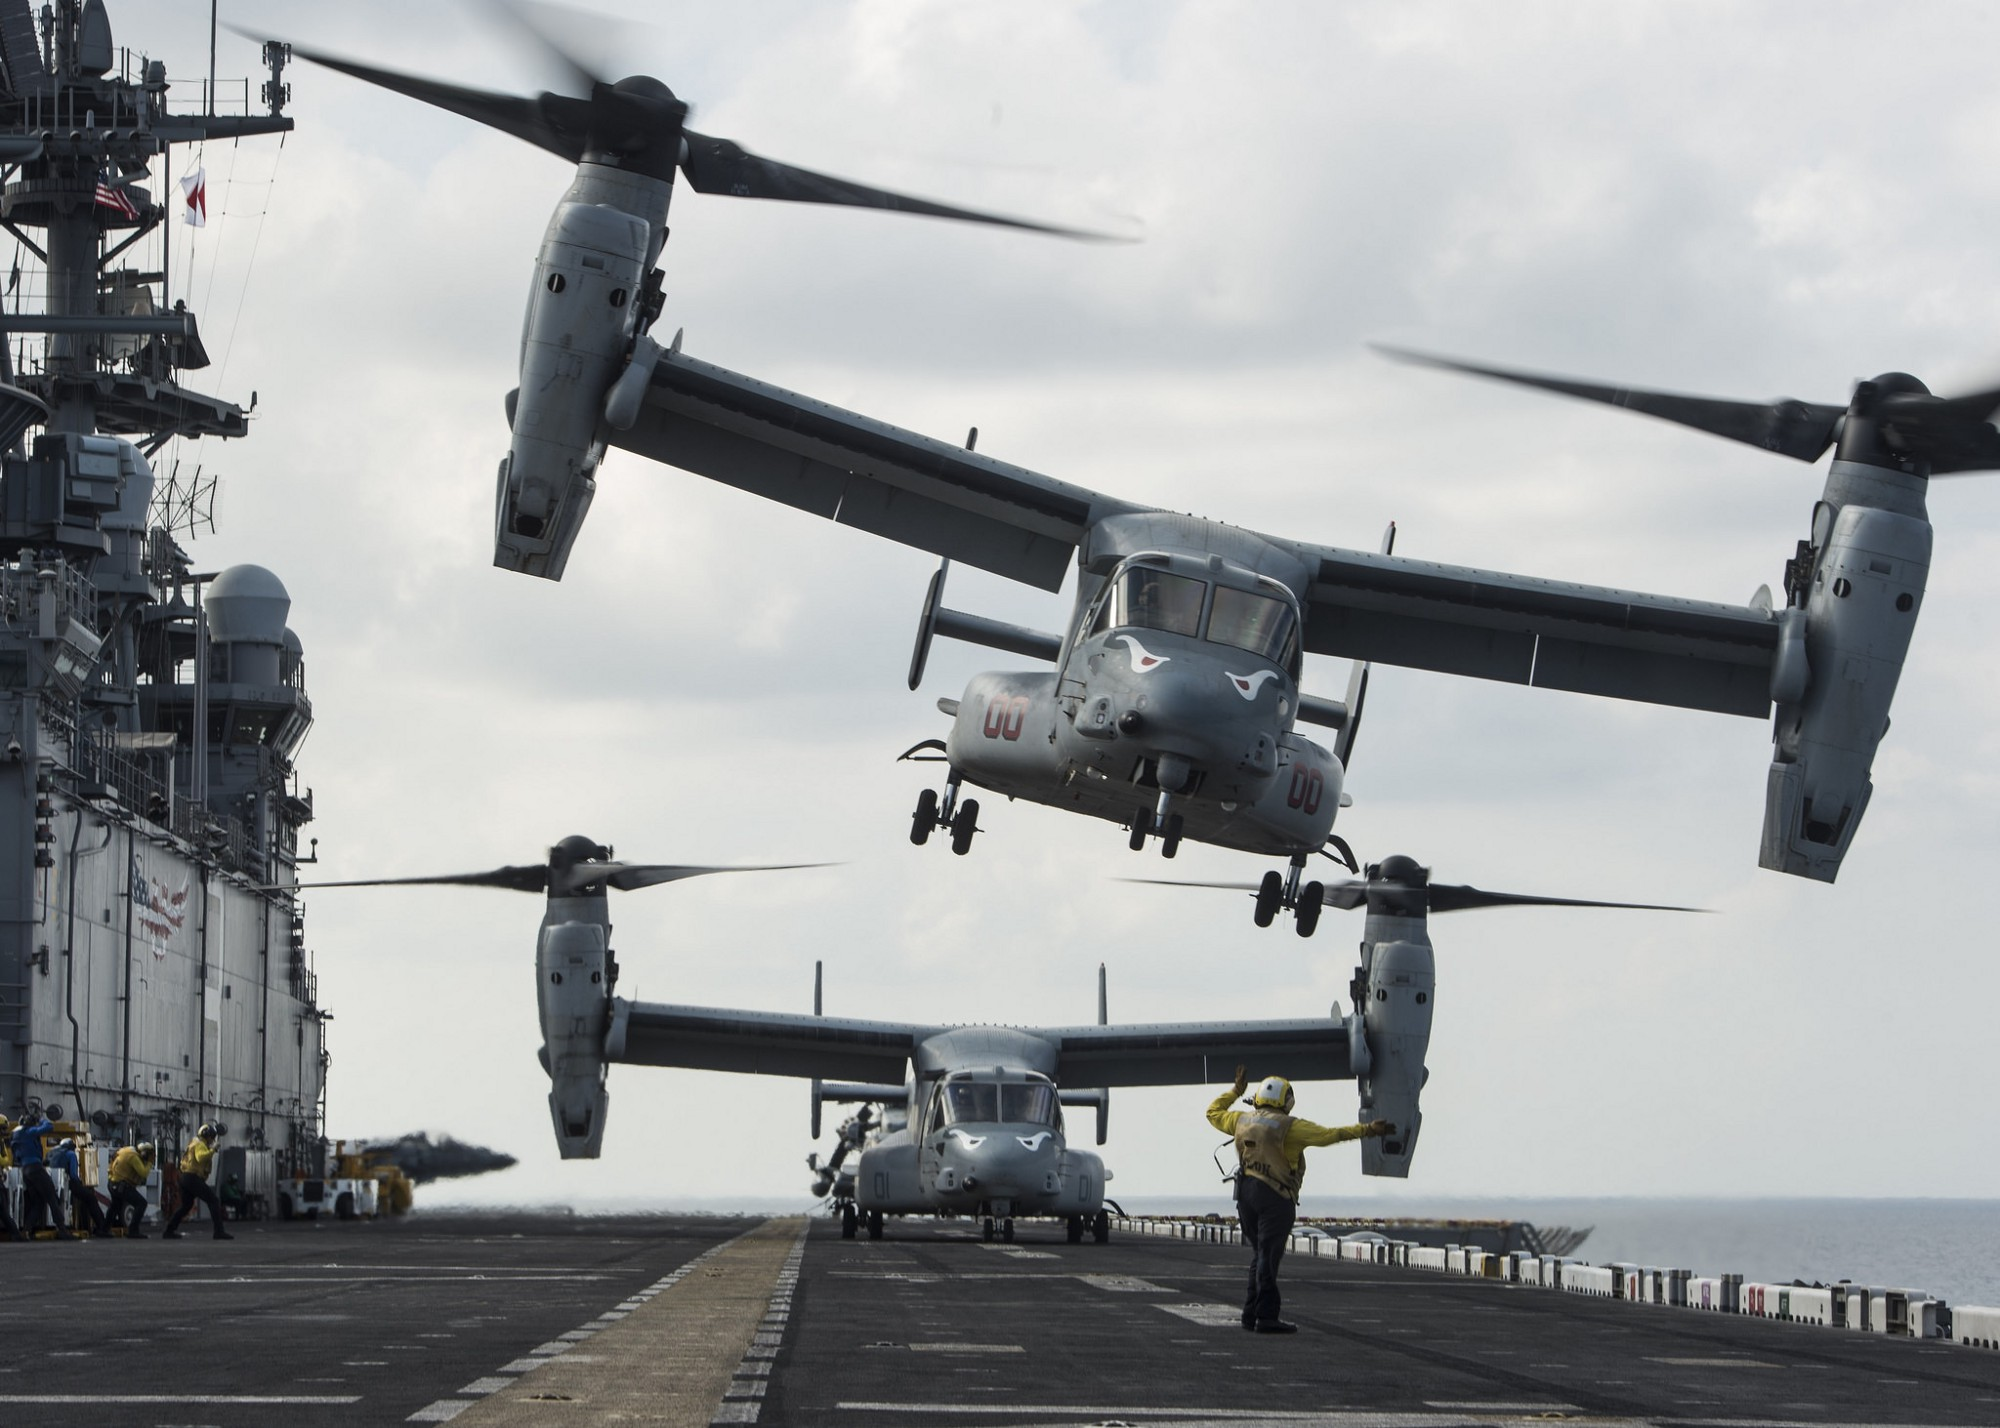 This Is How the U.S. Navy's CMV-22 Got Its Odd Name